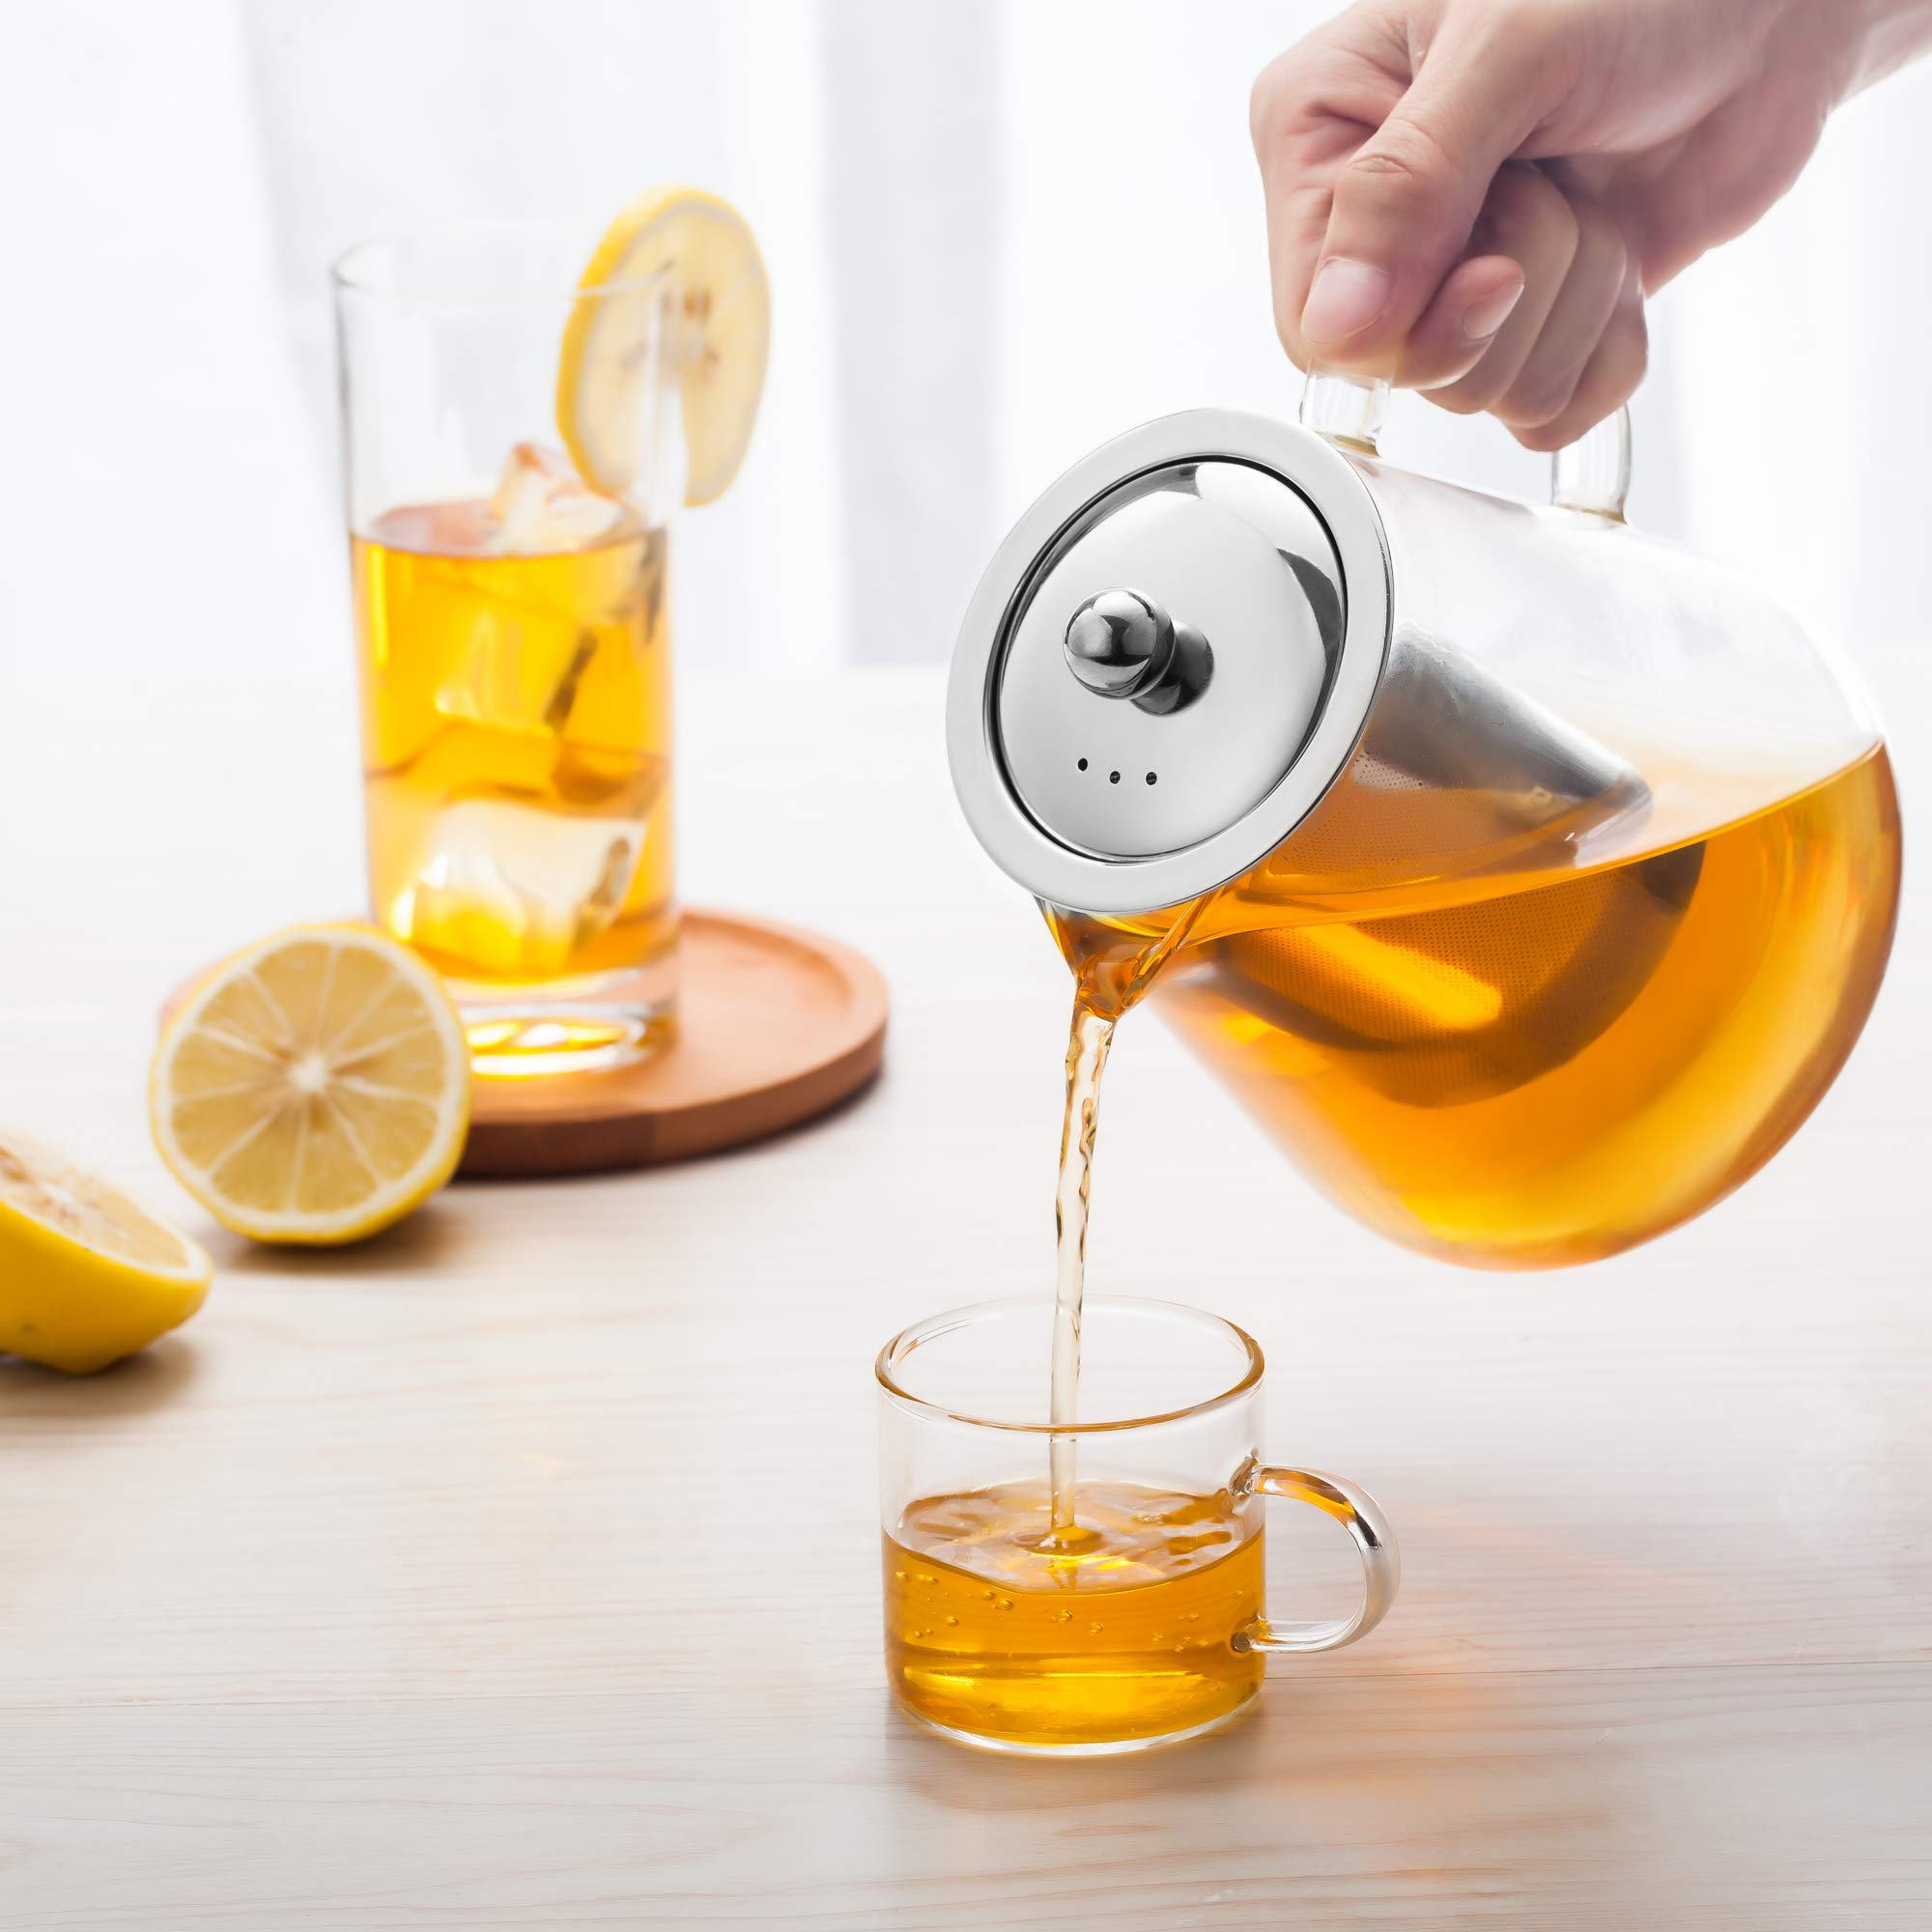 Glass Teapot Stovetop Save - OBOR Tea Kettle with Removable Food Grade Stainless Steel Infuser & Lid for Blooming and Loose Leaf Tea Maker - 32oz/950ml